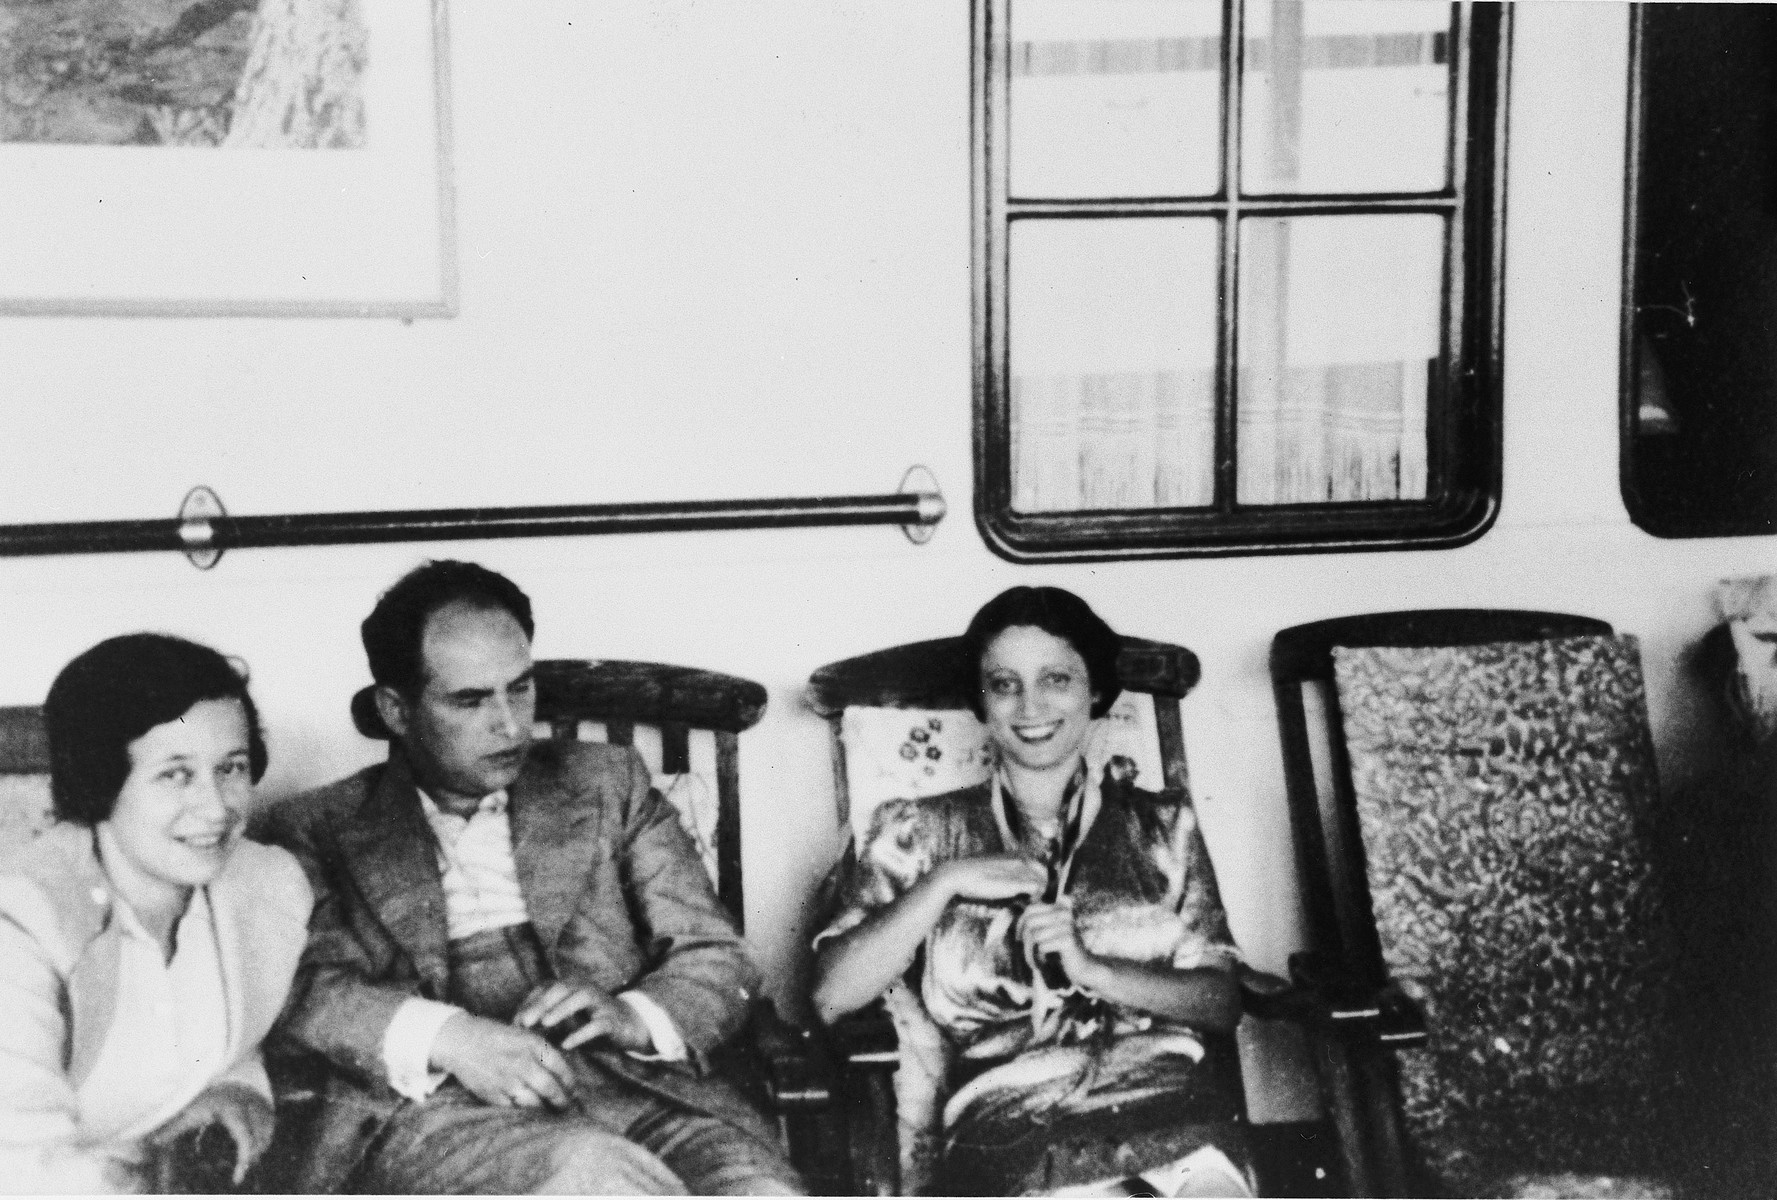 Three passengers relax on deck chairs on board the St. Louis.  From left to right are Irmgard and Josef Koeppel and Sofi Aron.